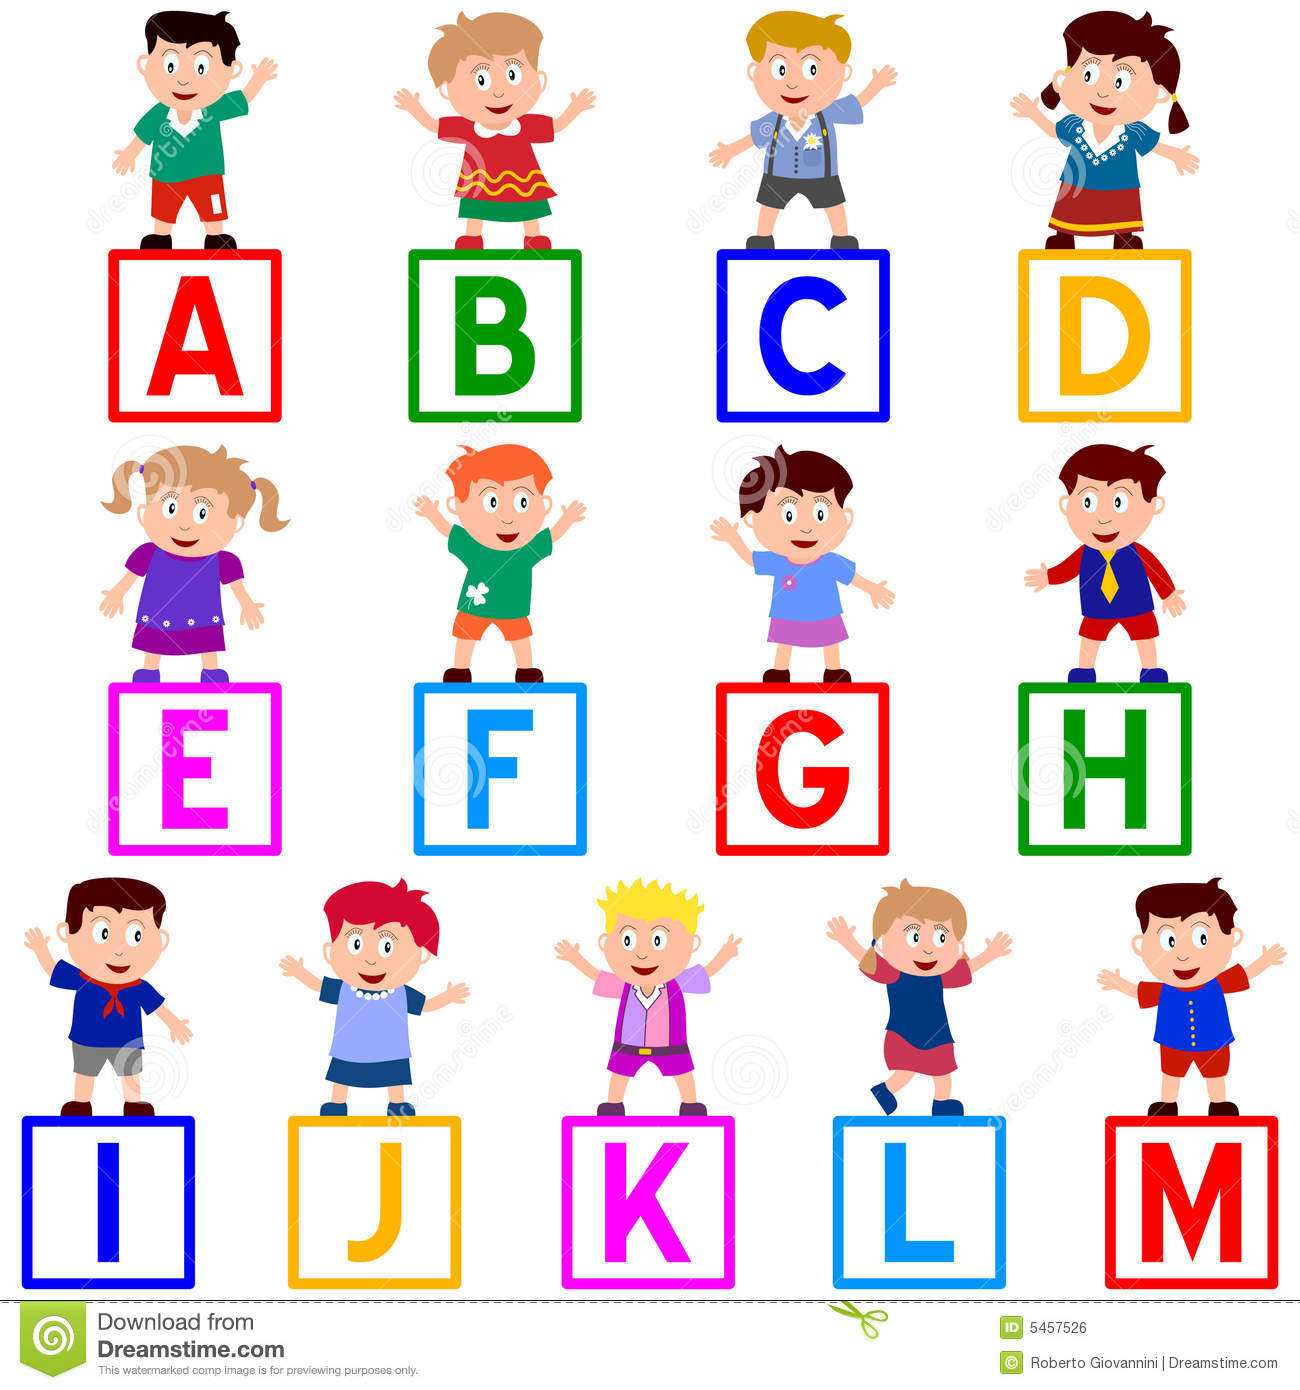 Alphabet block letter clipart png transparent stock Block Letters Clipart - Clipart Kid png transparent stock